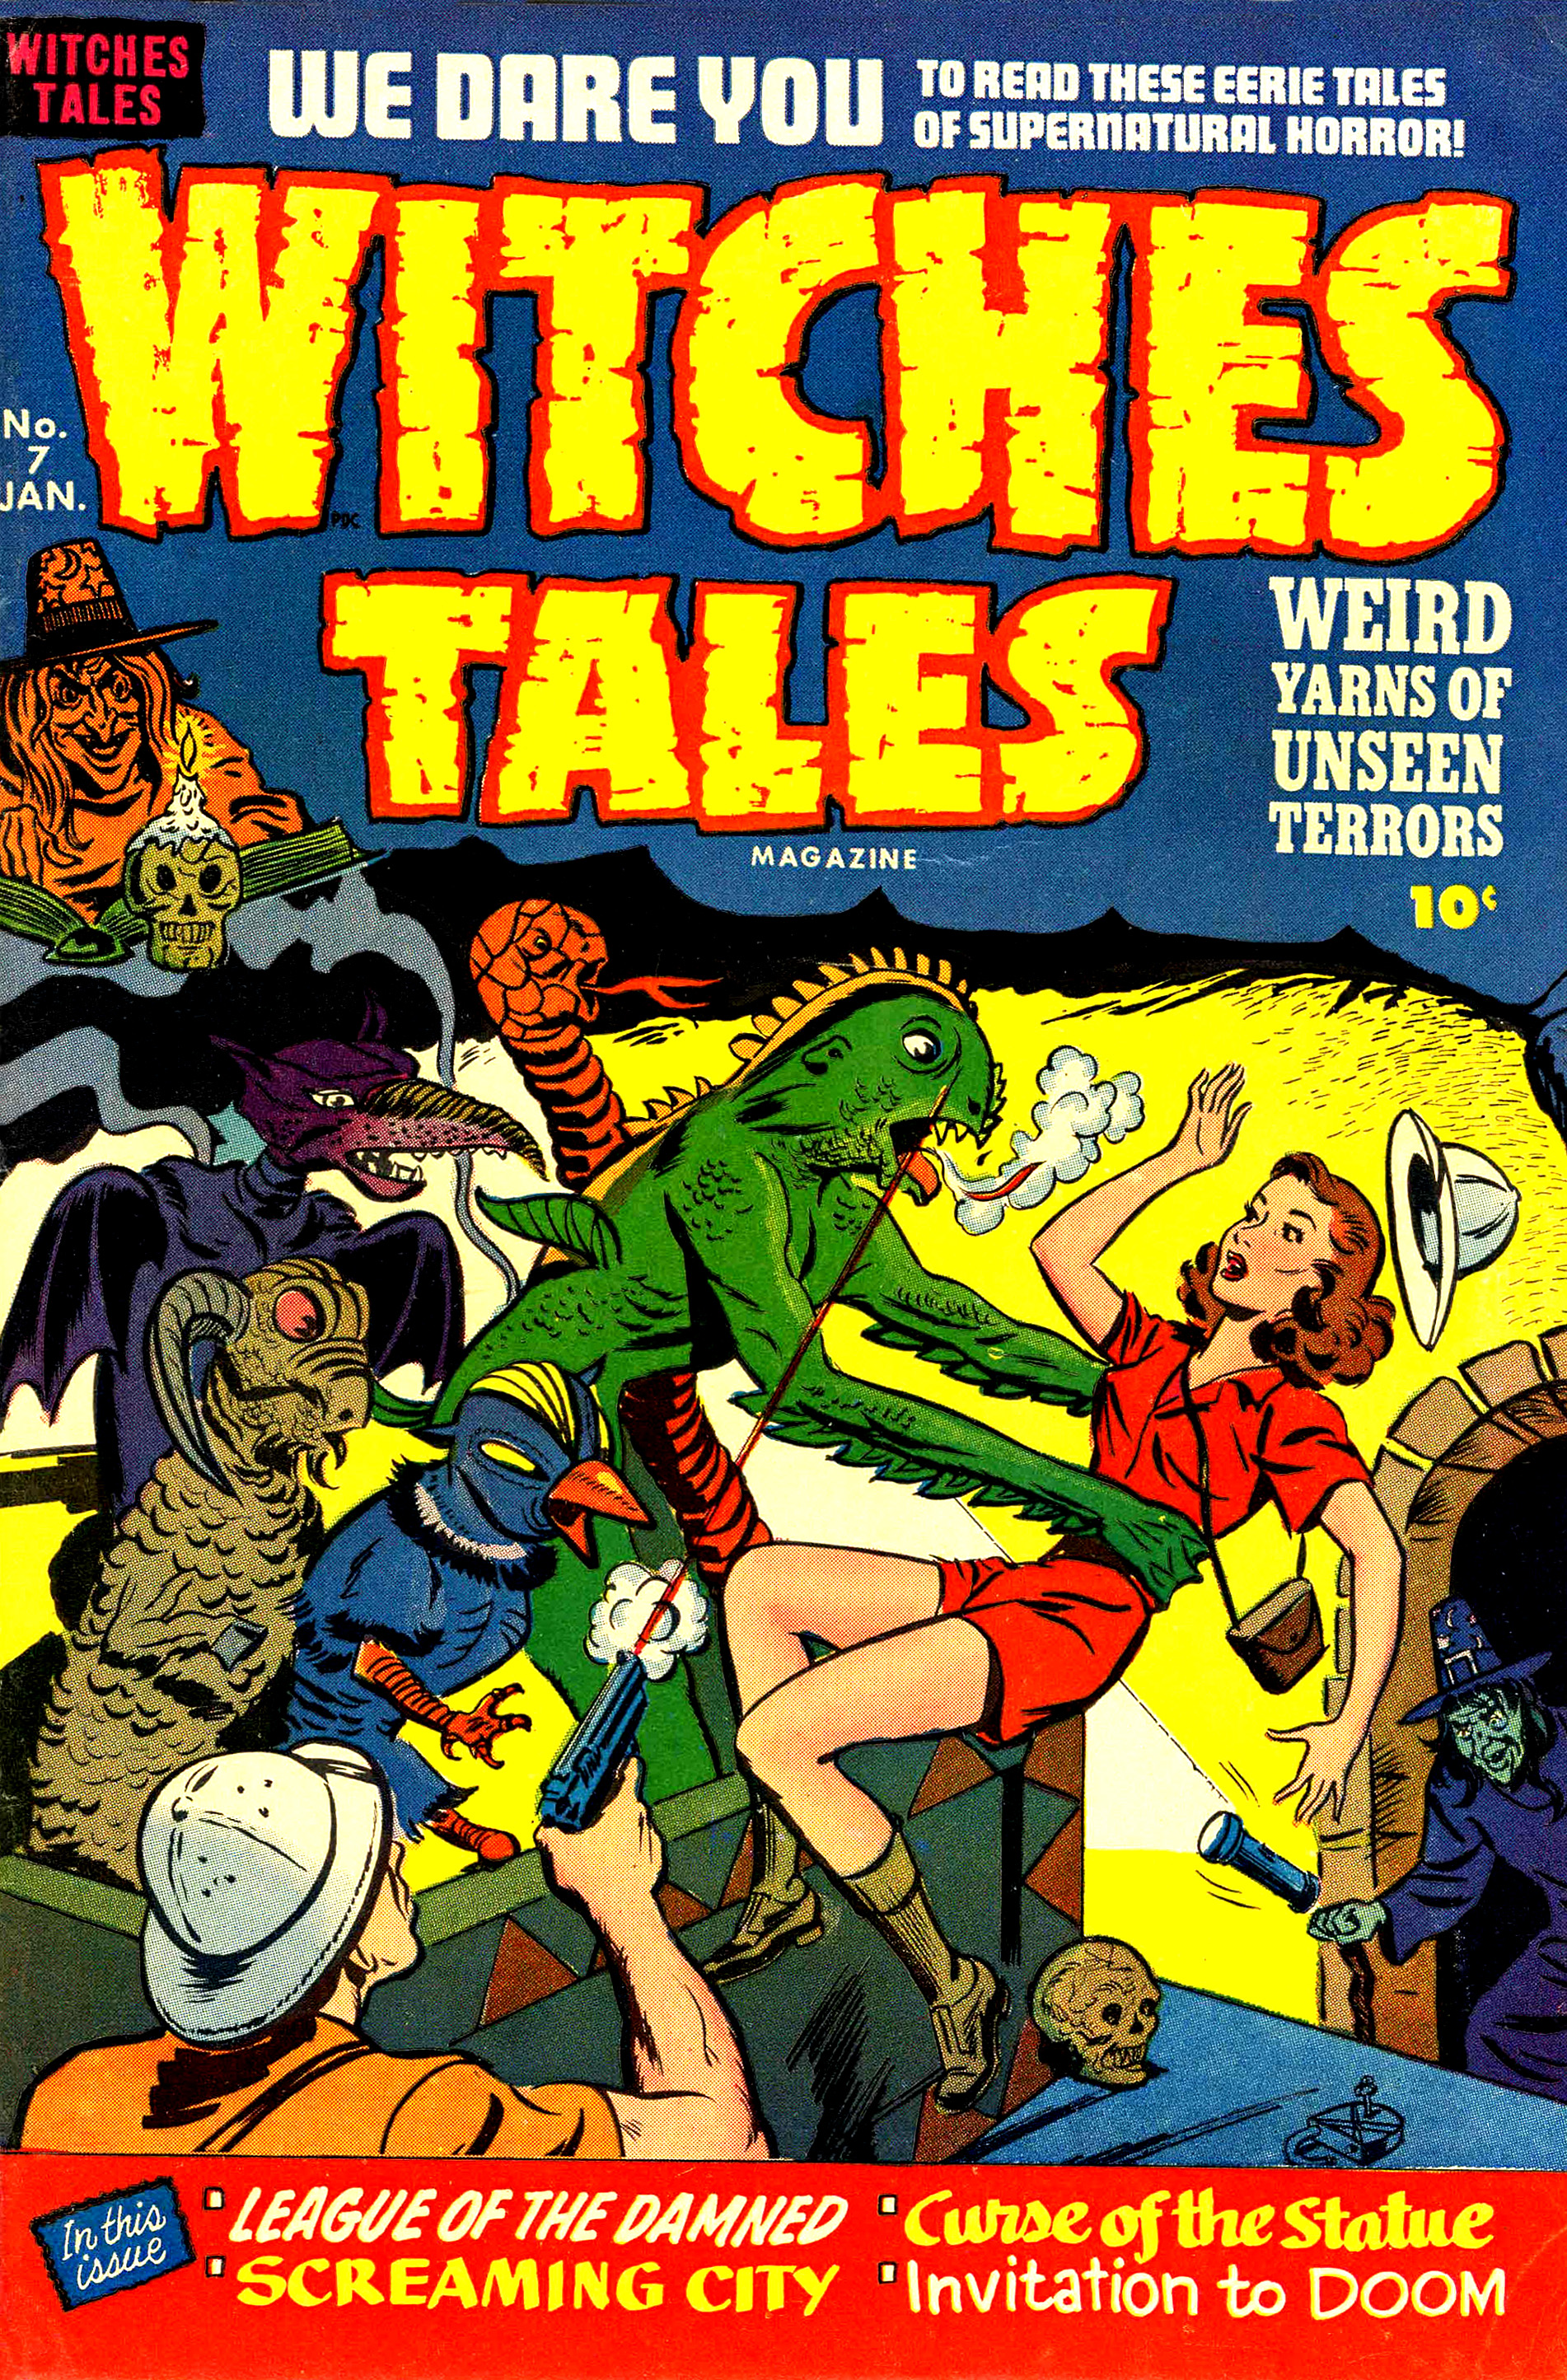 Witches Tales #7, Al Avison Cover (Harvey, 1952)